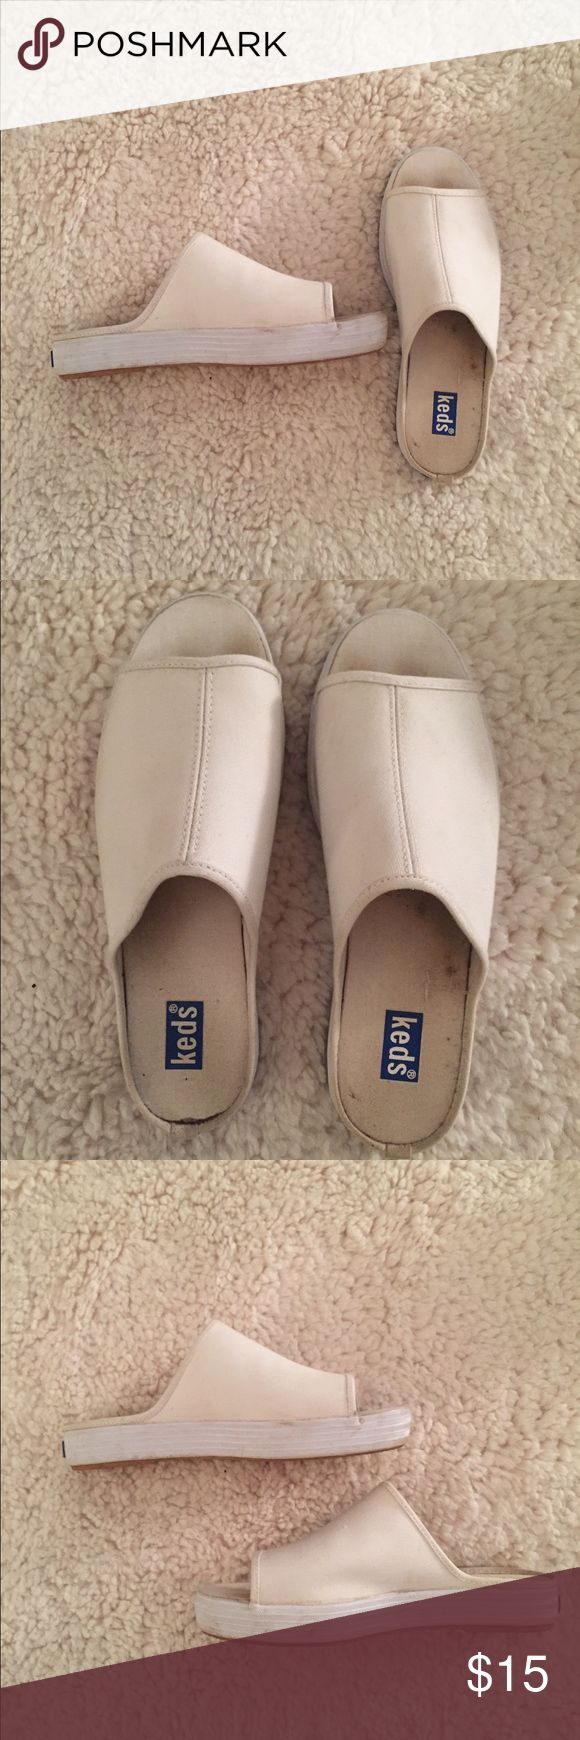 White Keds slip-ons Cute kids slip-ons, only worn twice but there is some visible wear inside the shoe, as pictured. Almost none on outside! Keds Shoes Sandals